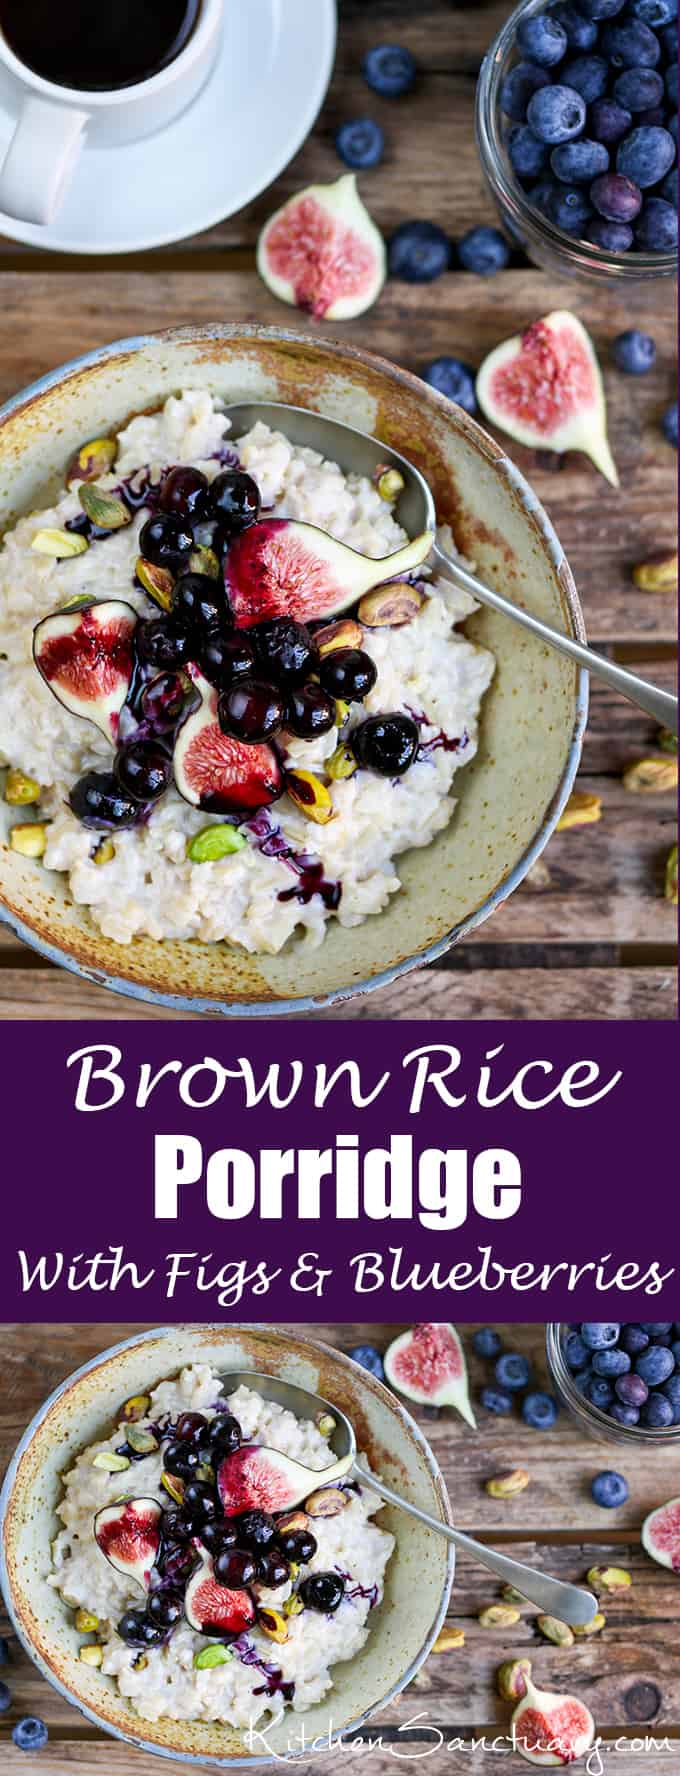 Brown Rice Porridge with figs, blueberries and pistachios. A healthy breakfast that's a little bit different. I thought it would taste weird, but it's really good!